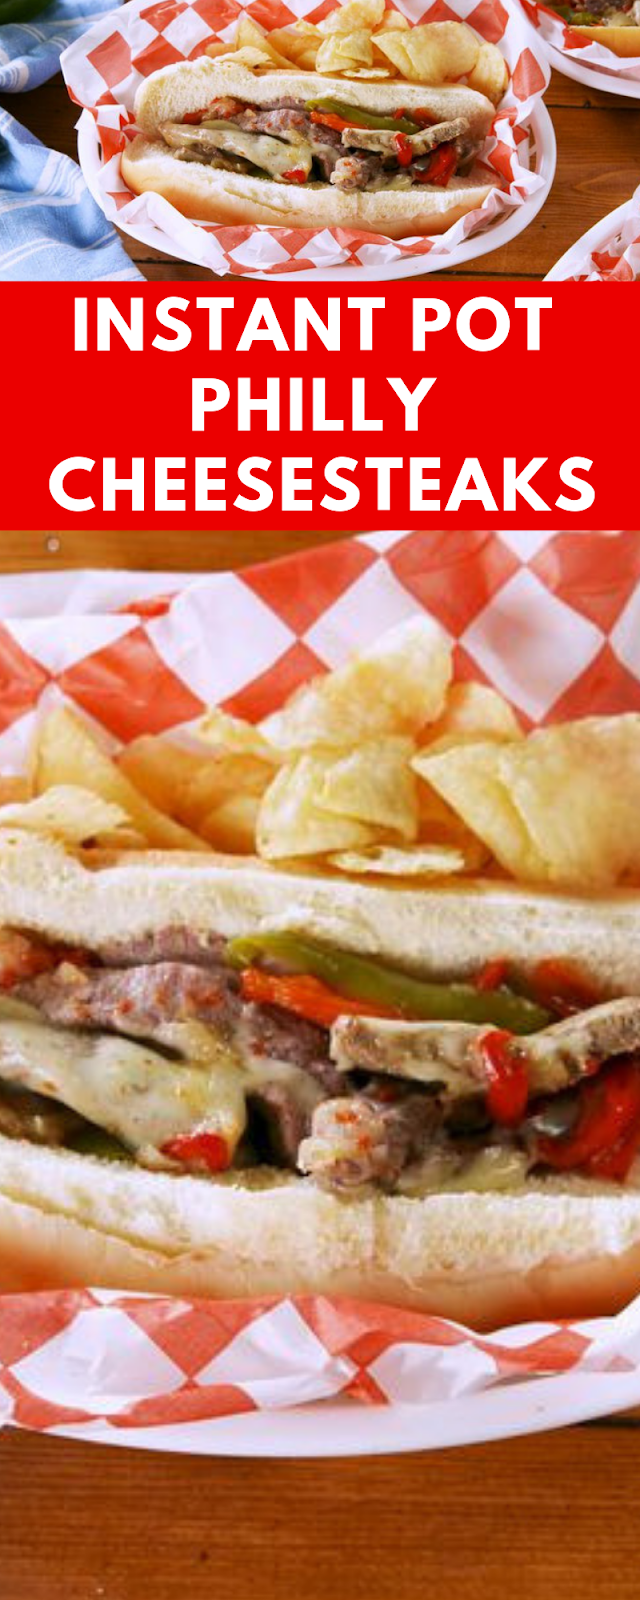 Instant Pot Philly Cheesesteaks